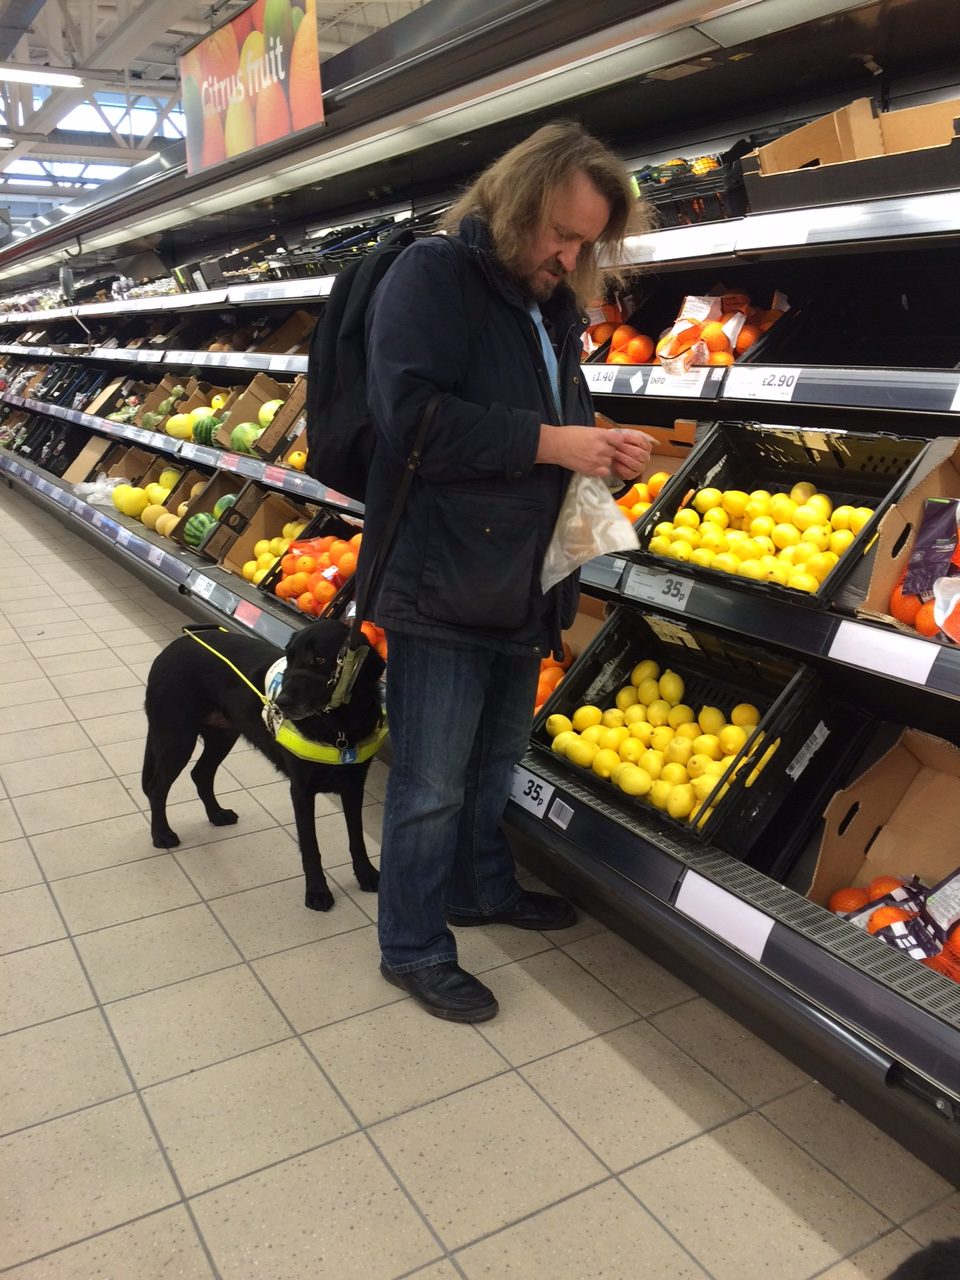 Image of Steve shopping with guide dog